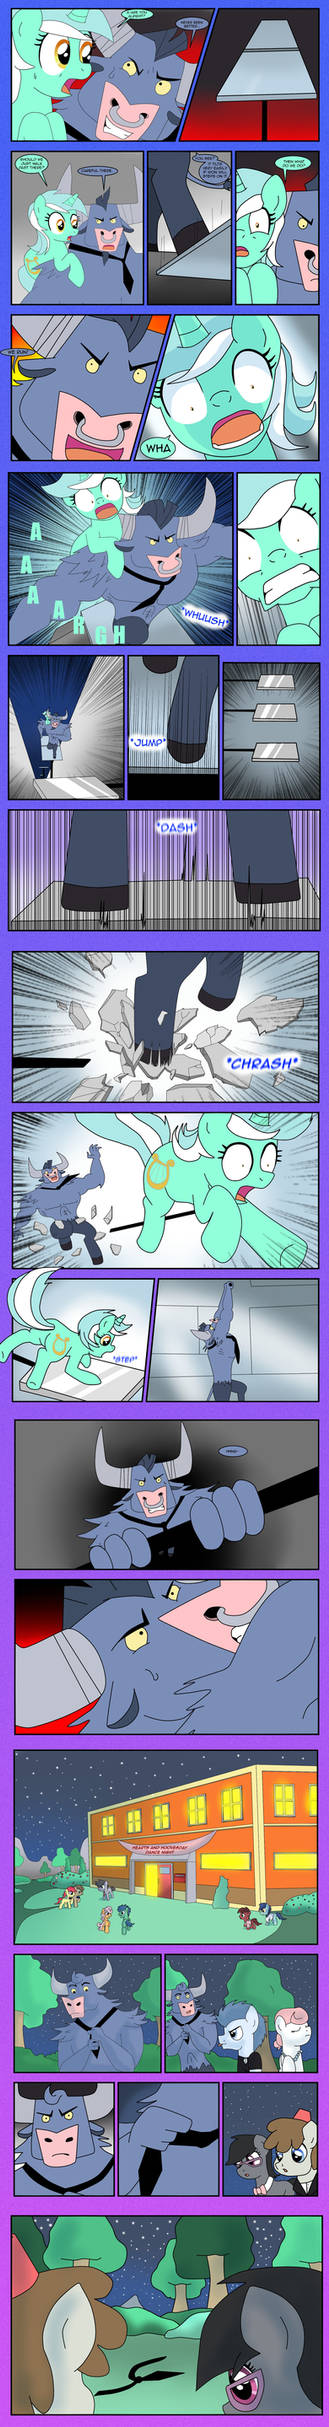 Doctor Whooves - Twists and Turns Pt 7